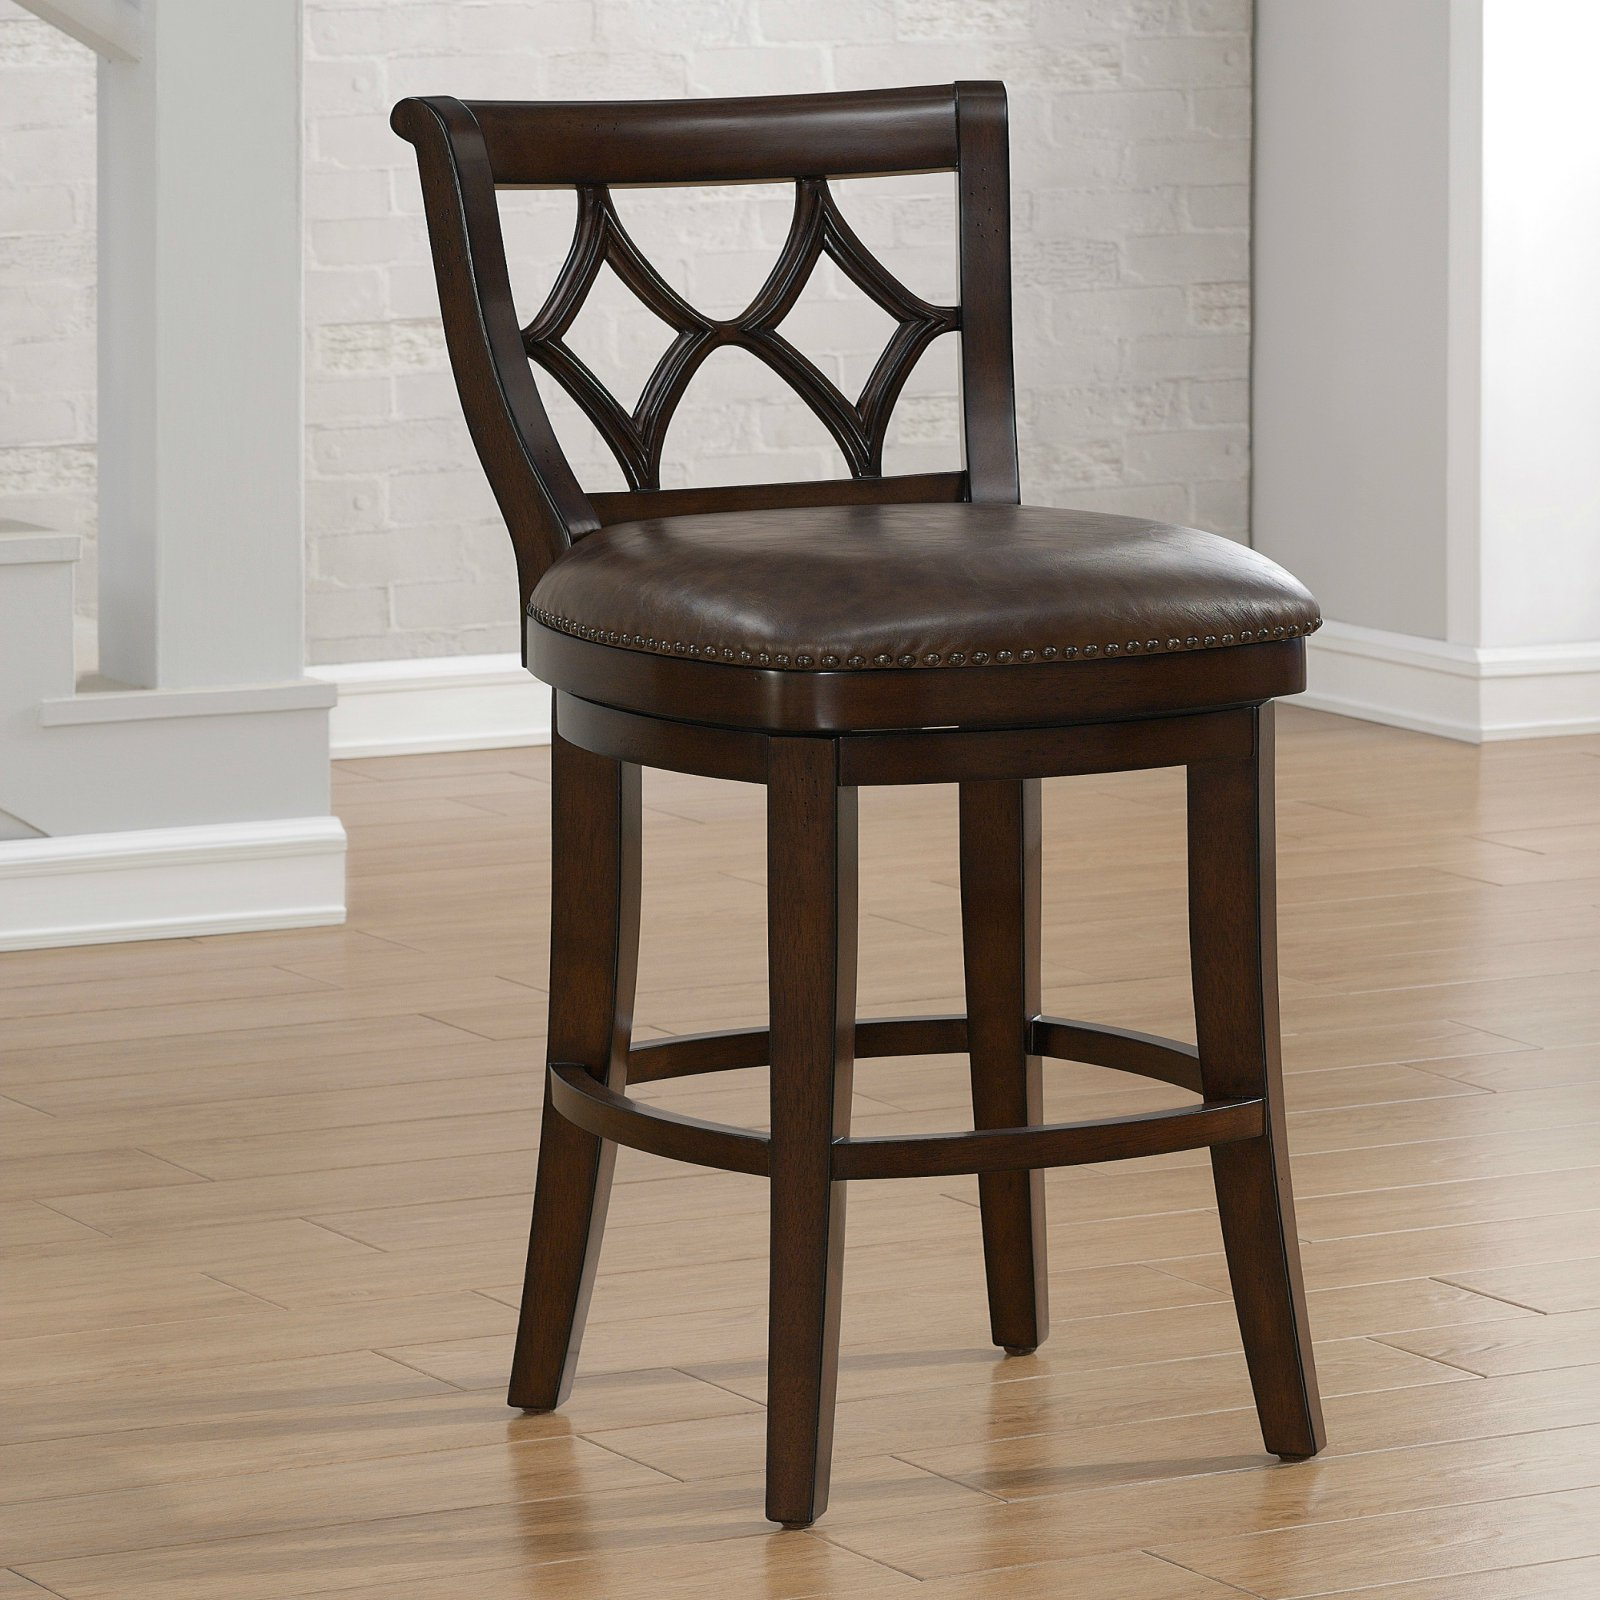 AHB Coventry Counter Stool by American Heritage Billiards